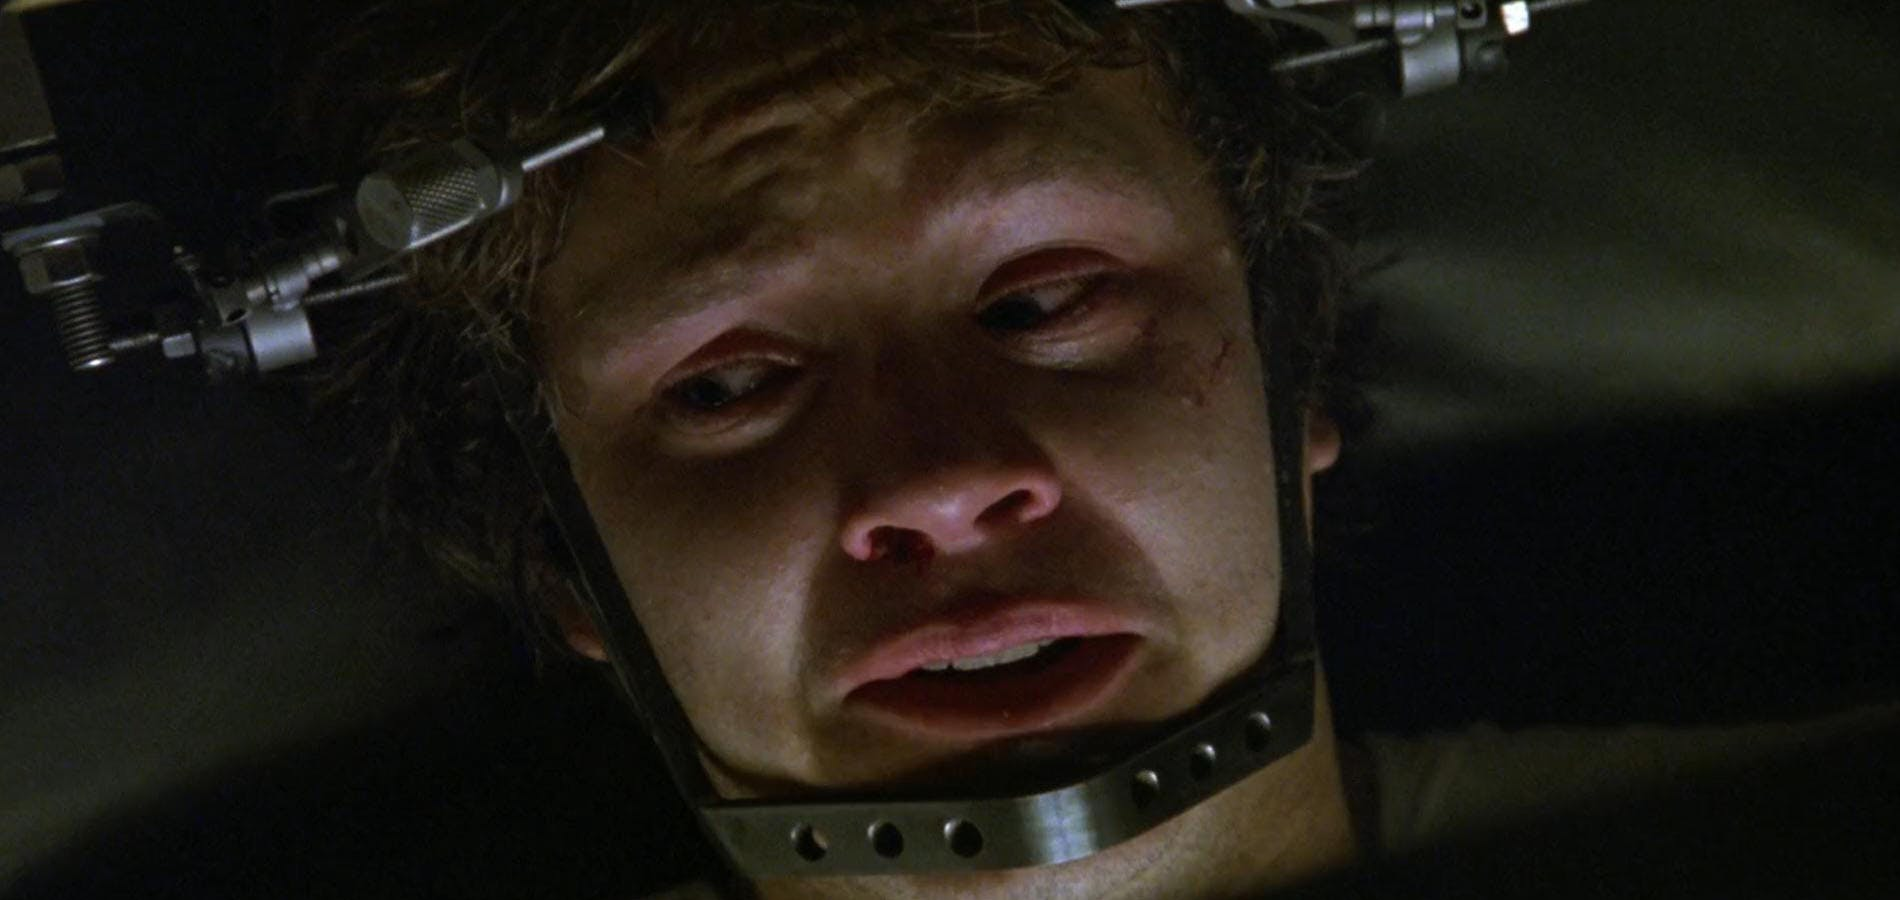 This is a still from the film Jacob's Ladder.